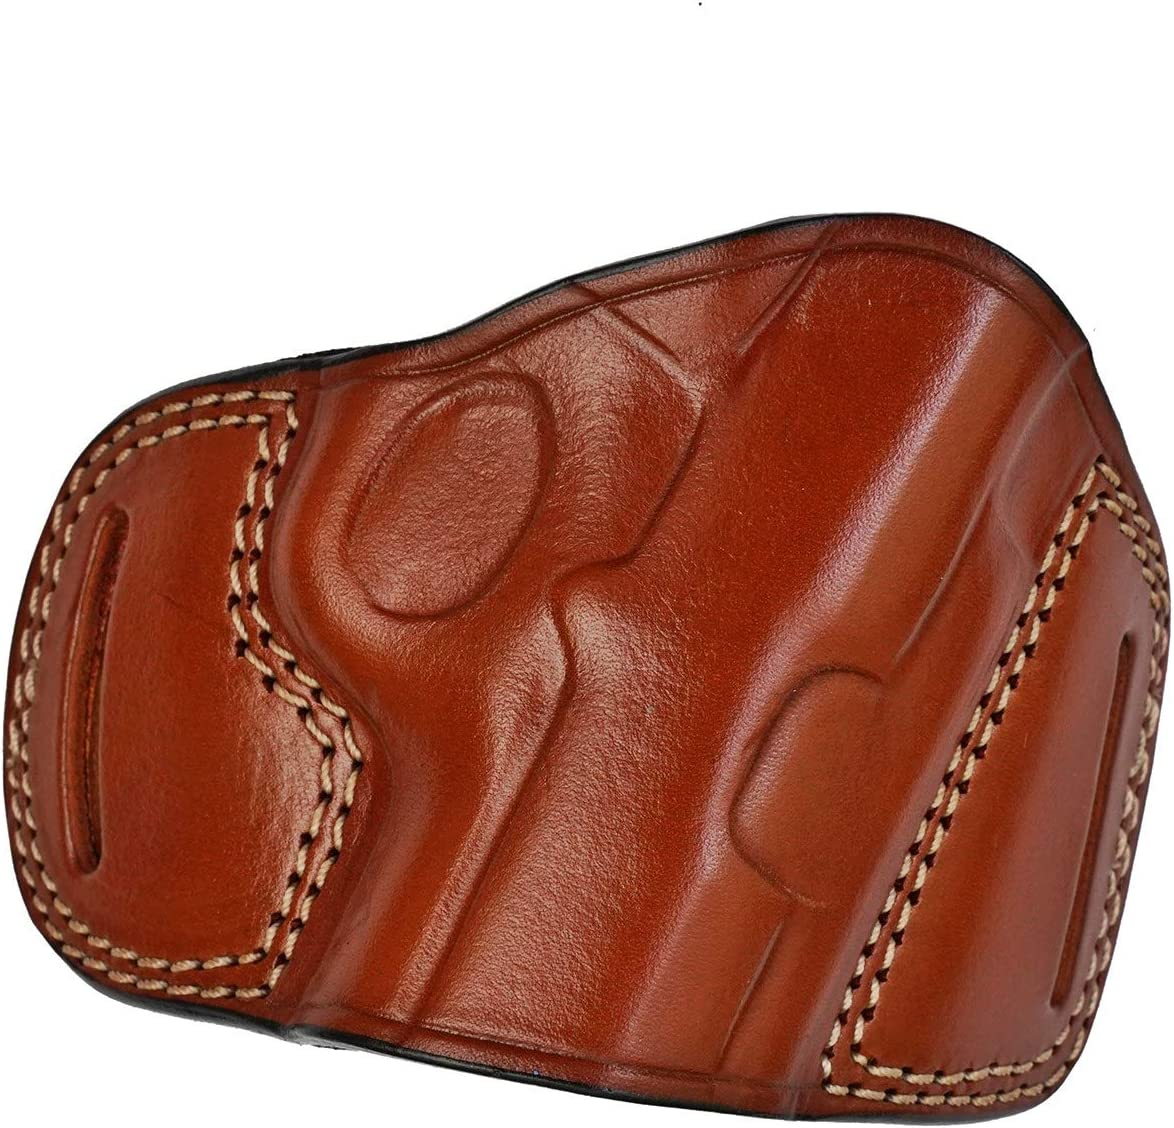 OWB Leather Holster for Oakland Mall Canik Series - Ranking TOP15 Genuine TP9 Bro